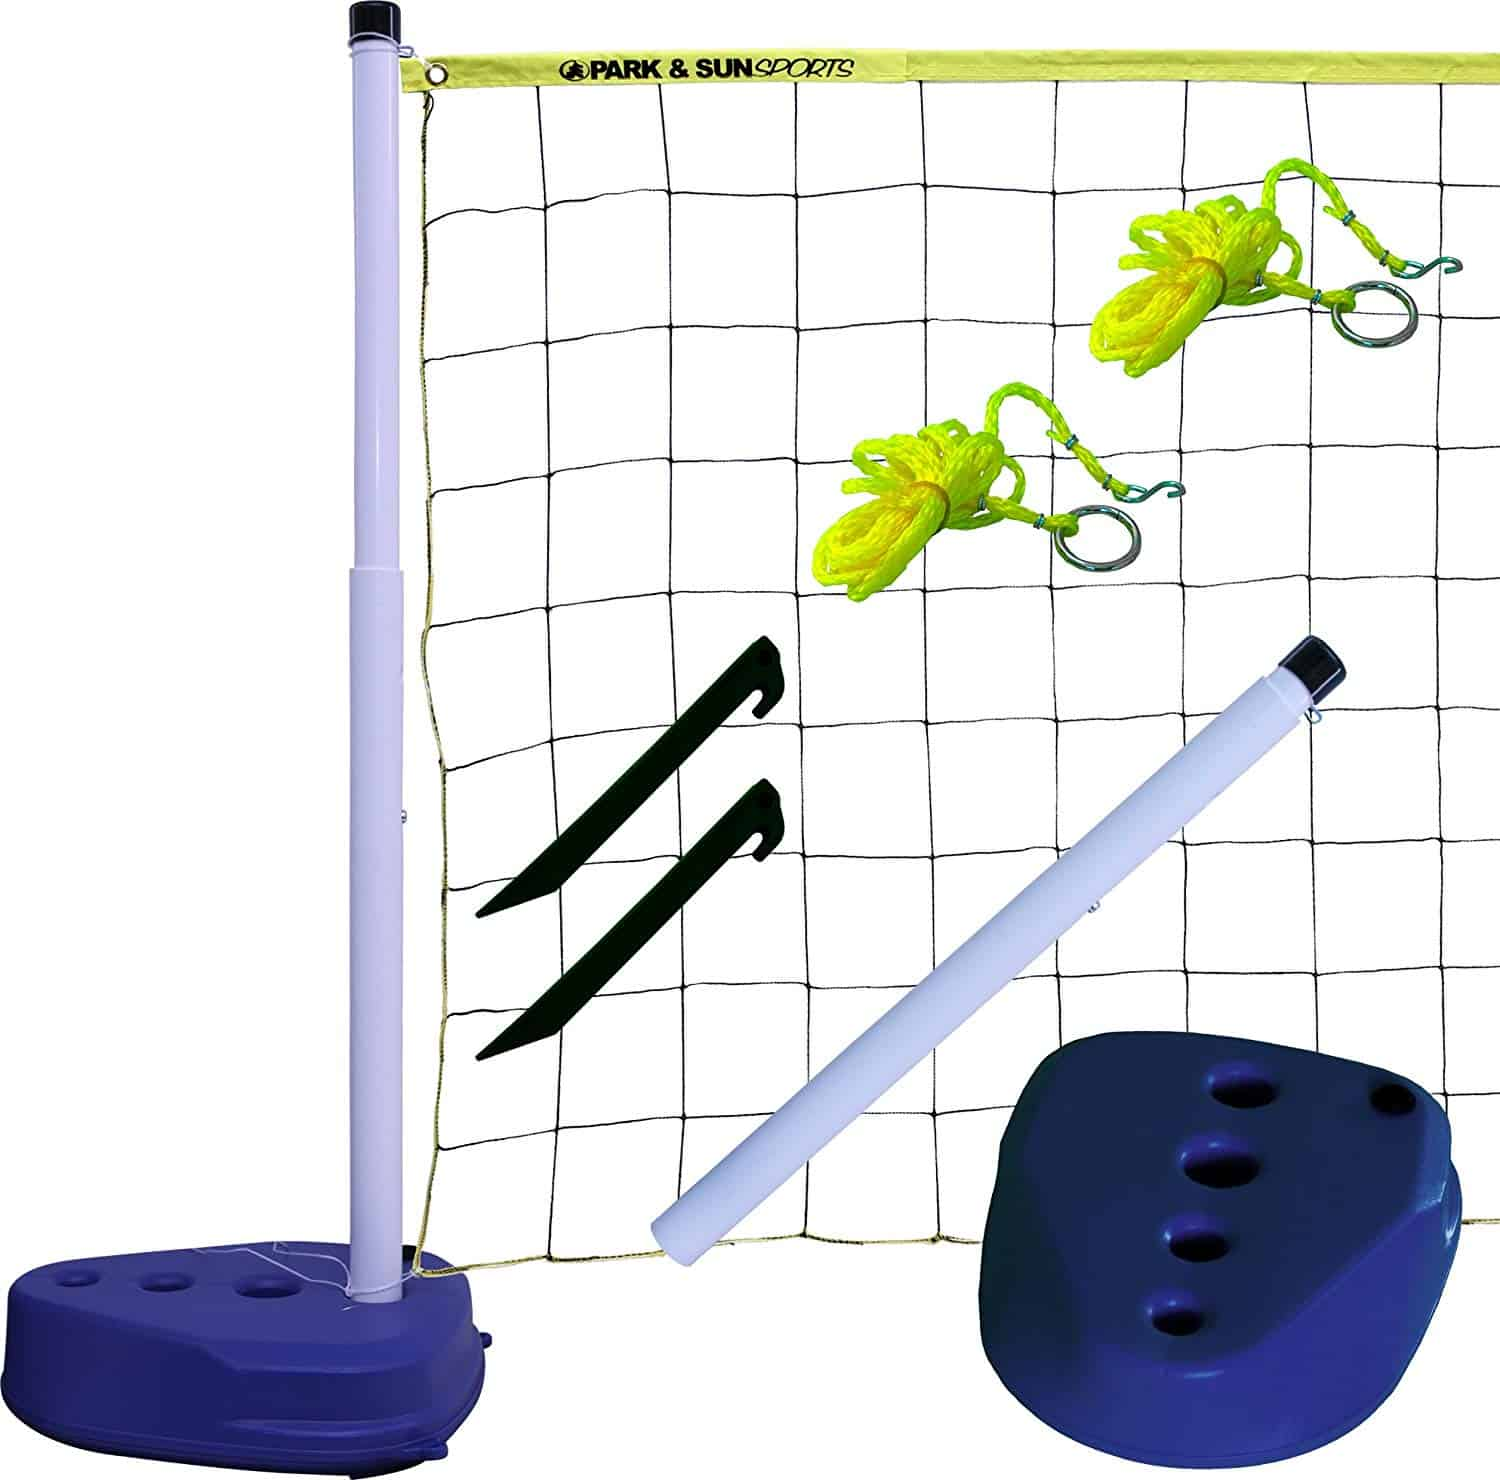 water-volley-ball-net